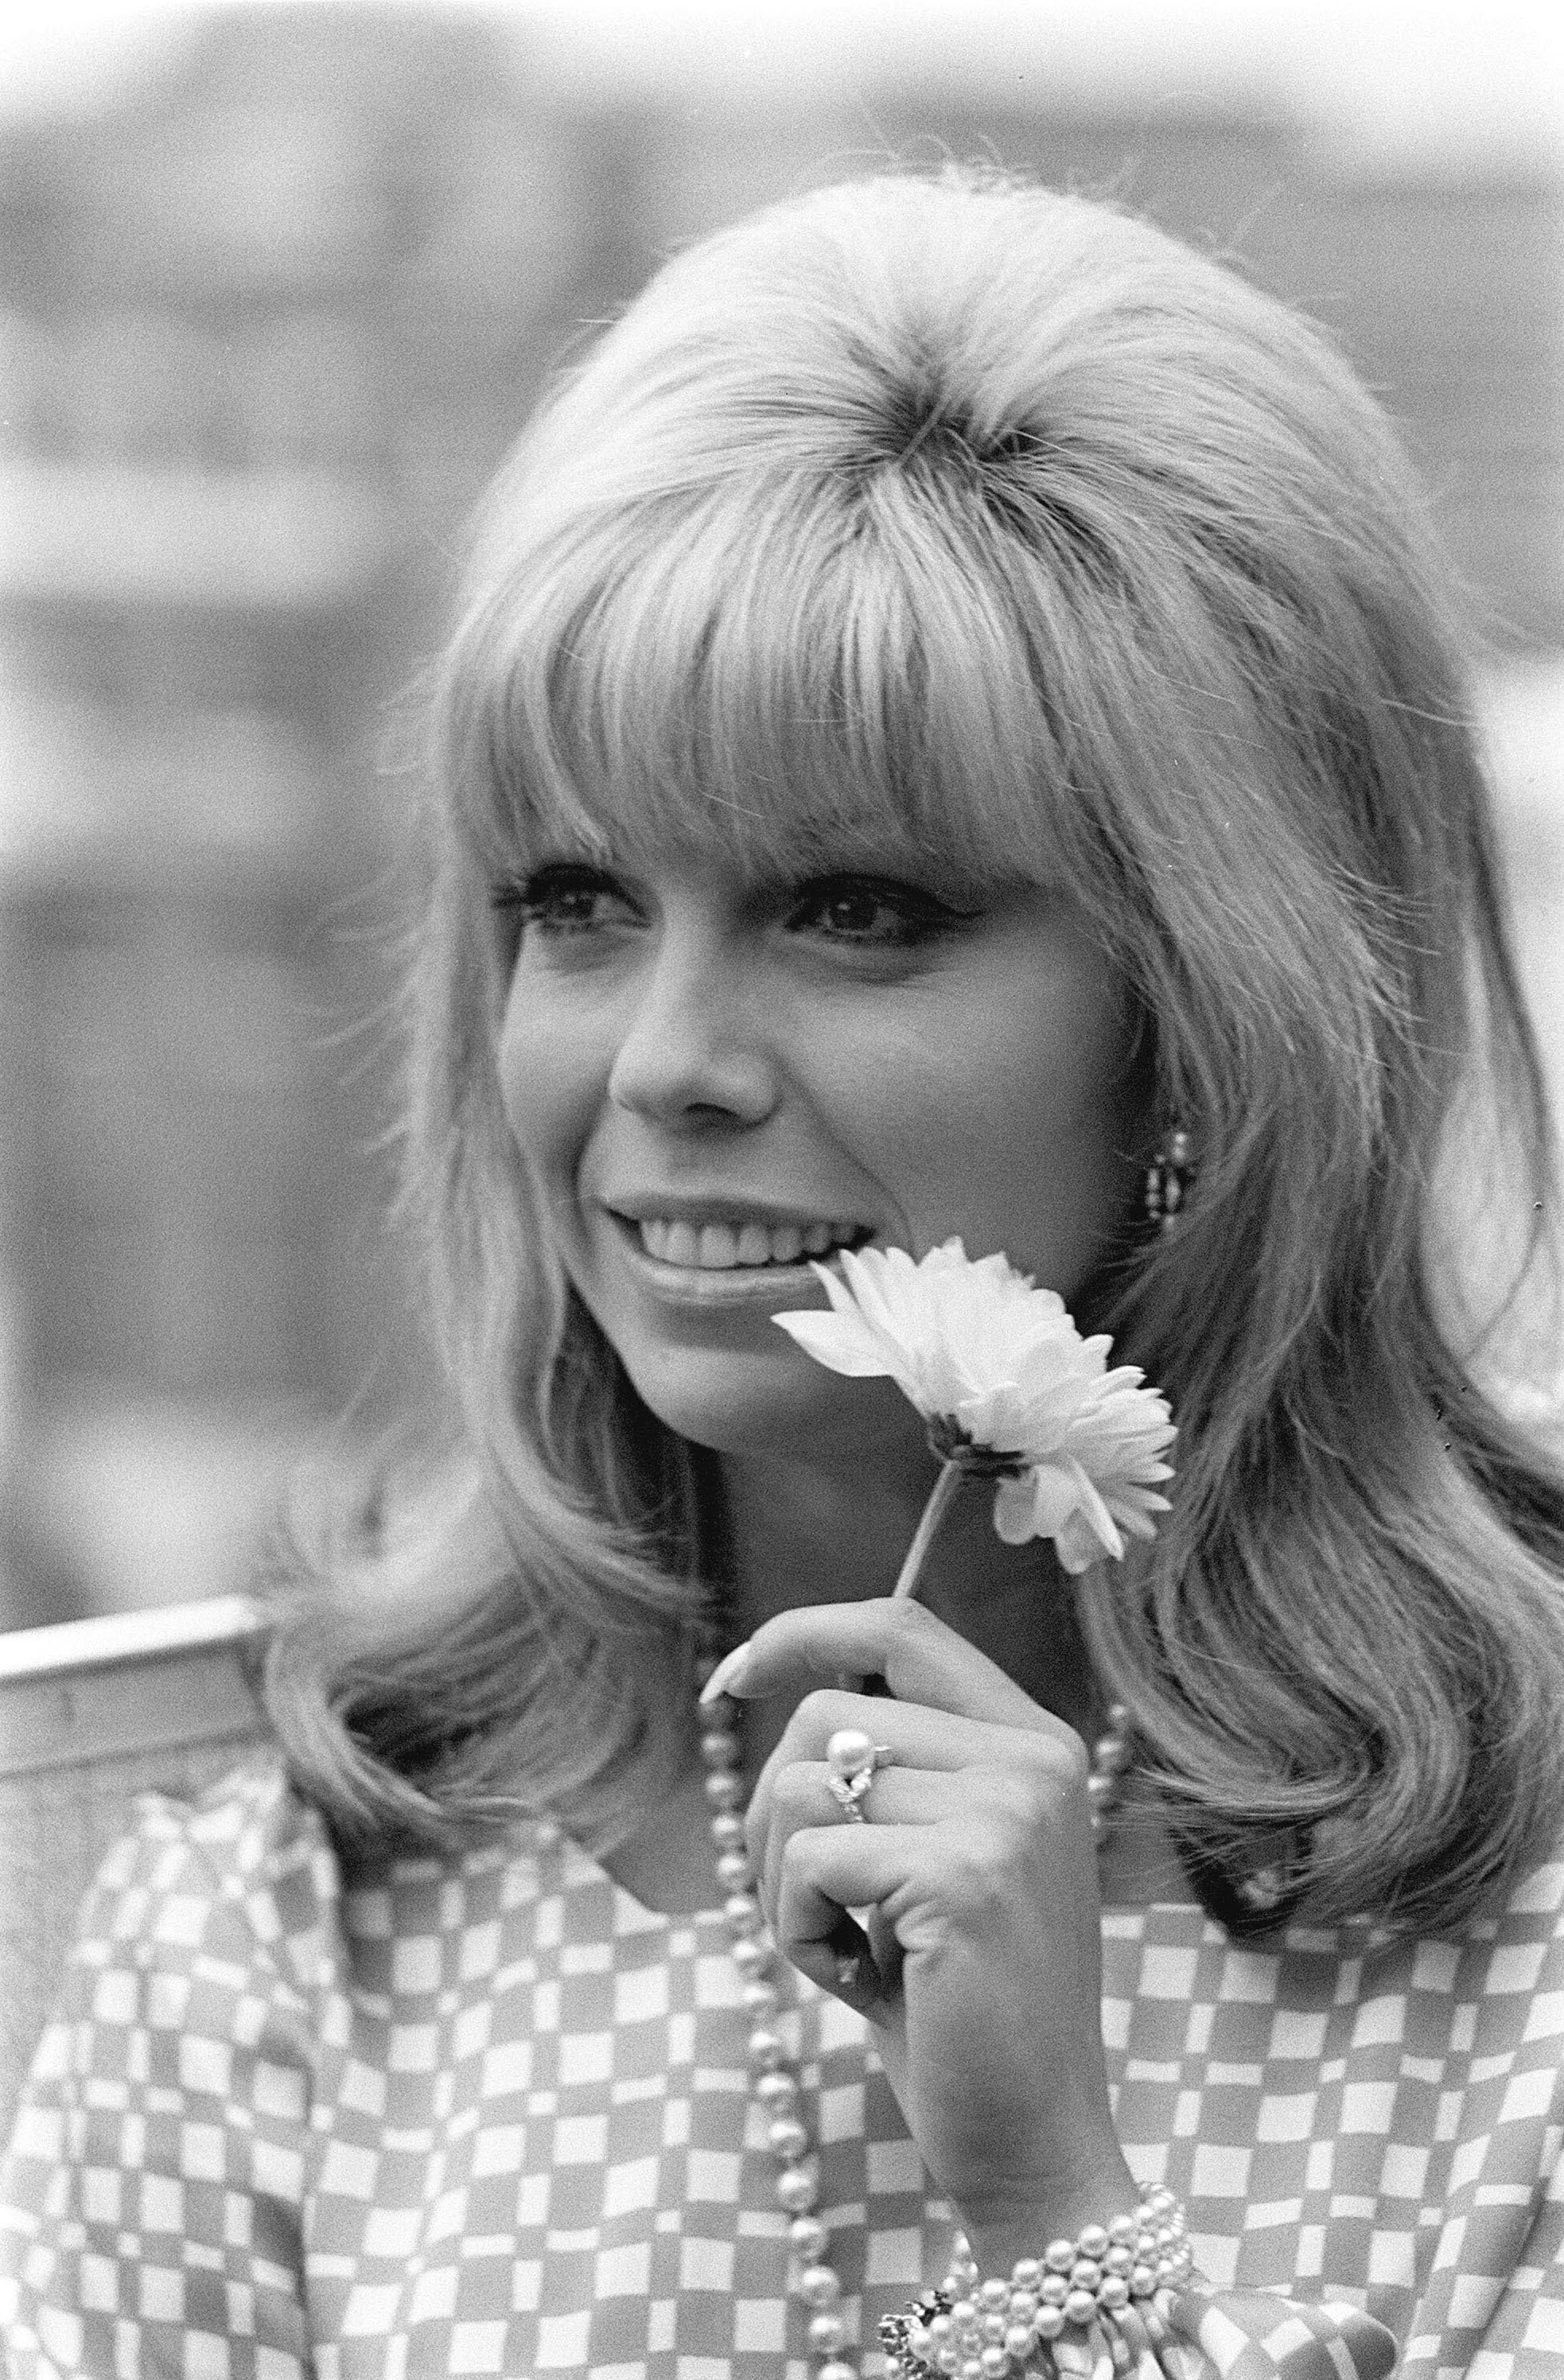 60s hairstyles: Nancy Sinatra with shoulder length blonde hair with backcombed roots, bangs and flicked out ends holding a flower in black and white image